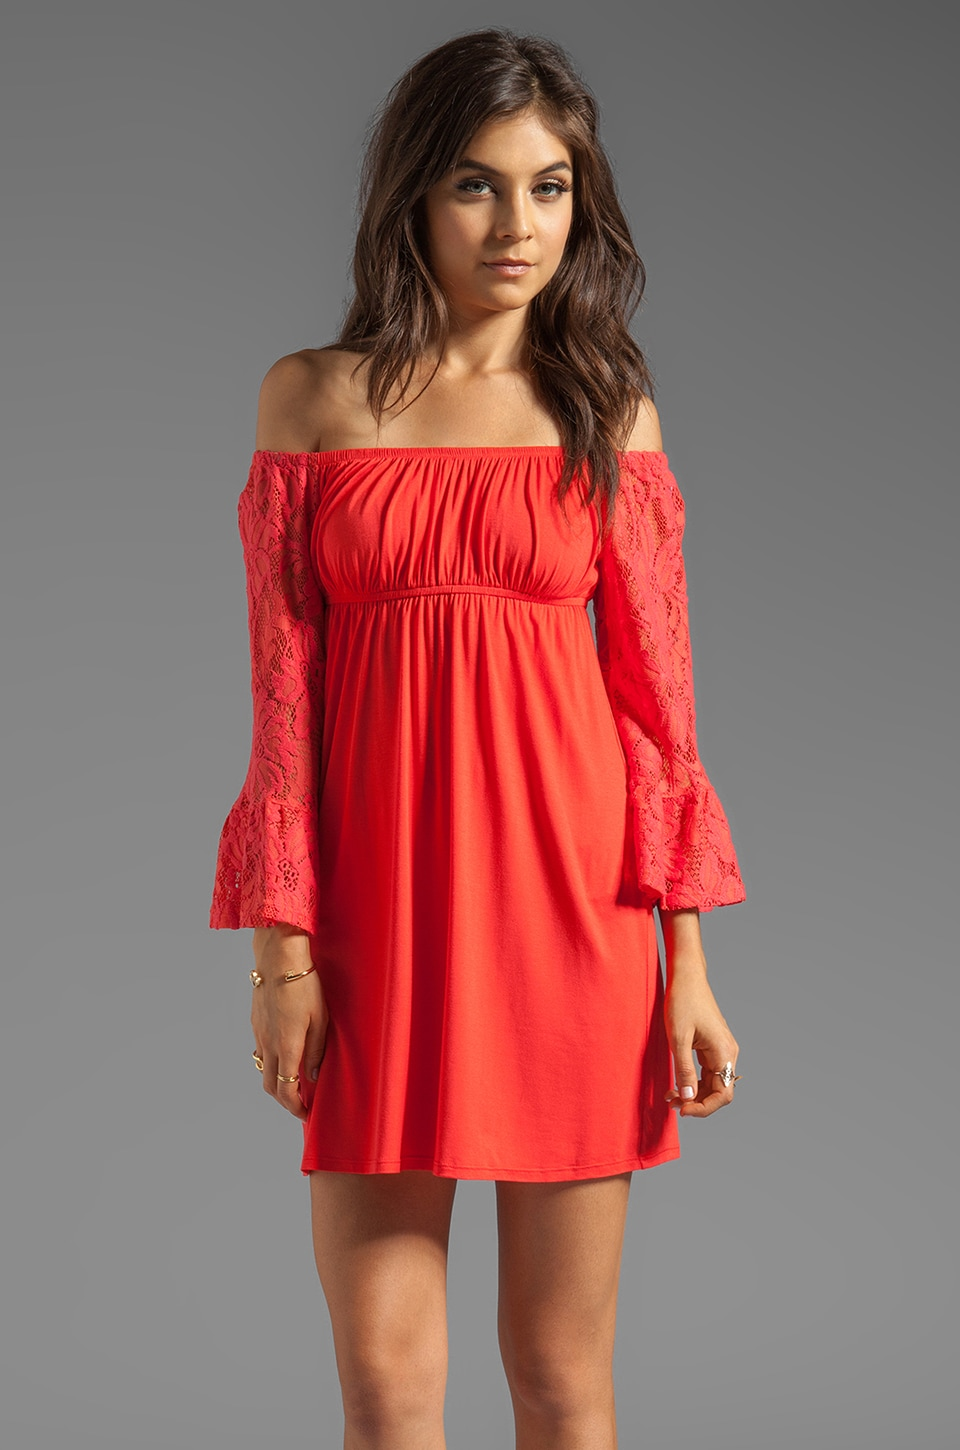 VAVA by Joy Han Skyler Off the Shoulder Dress in Dark Orange